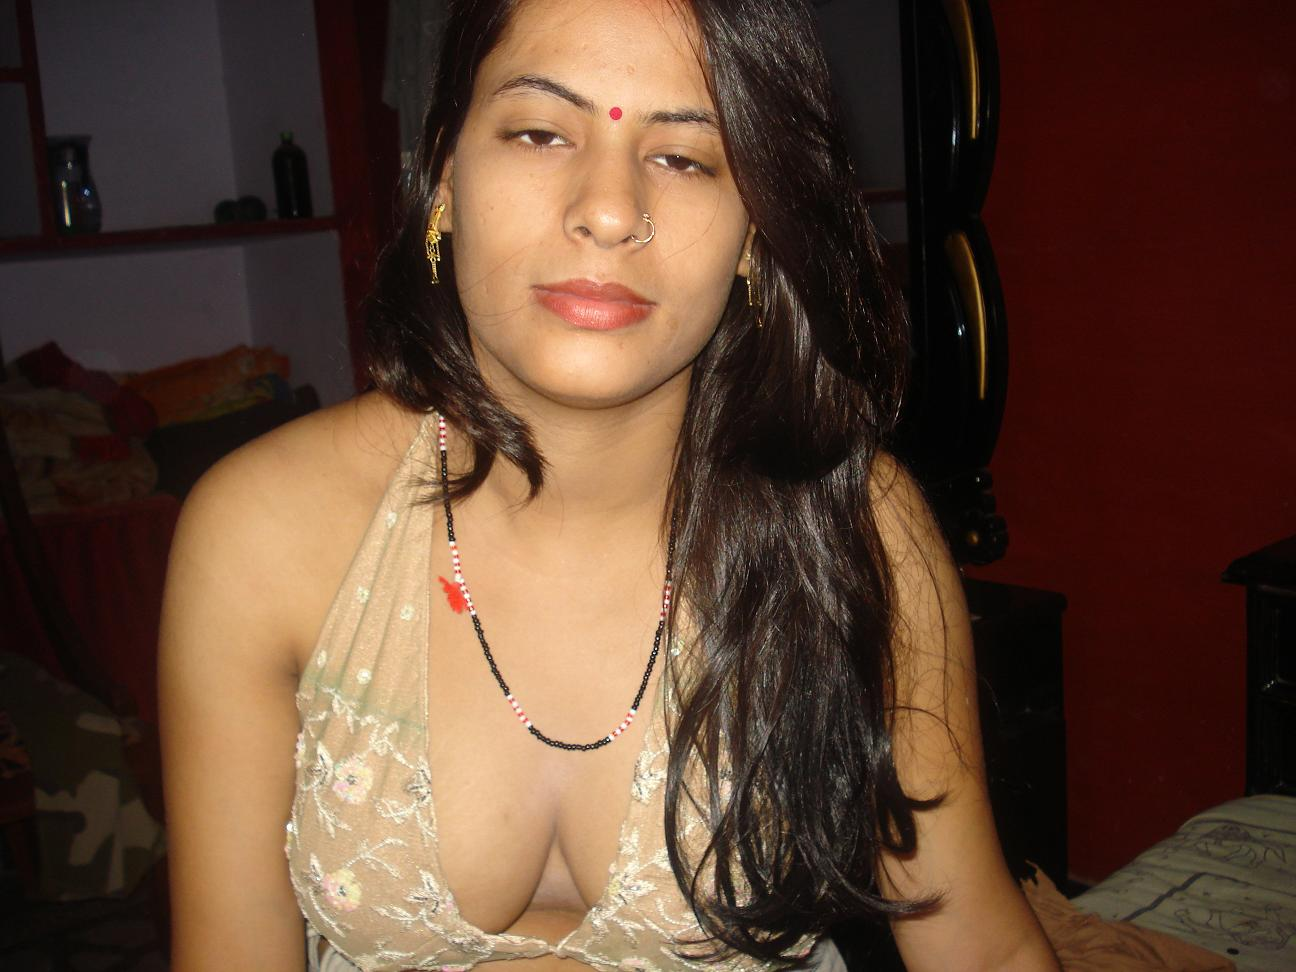 Indian maid porn story